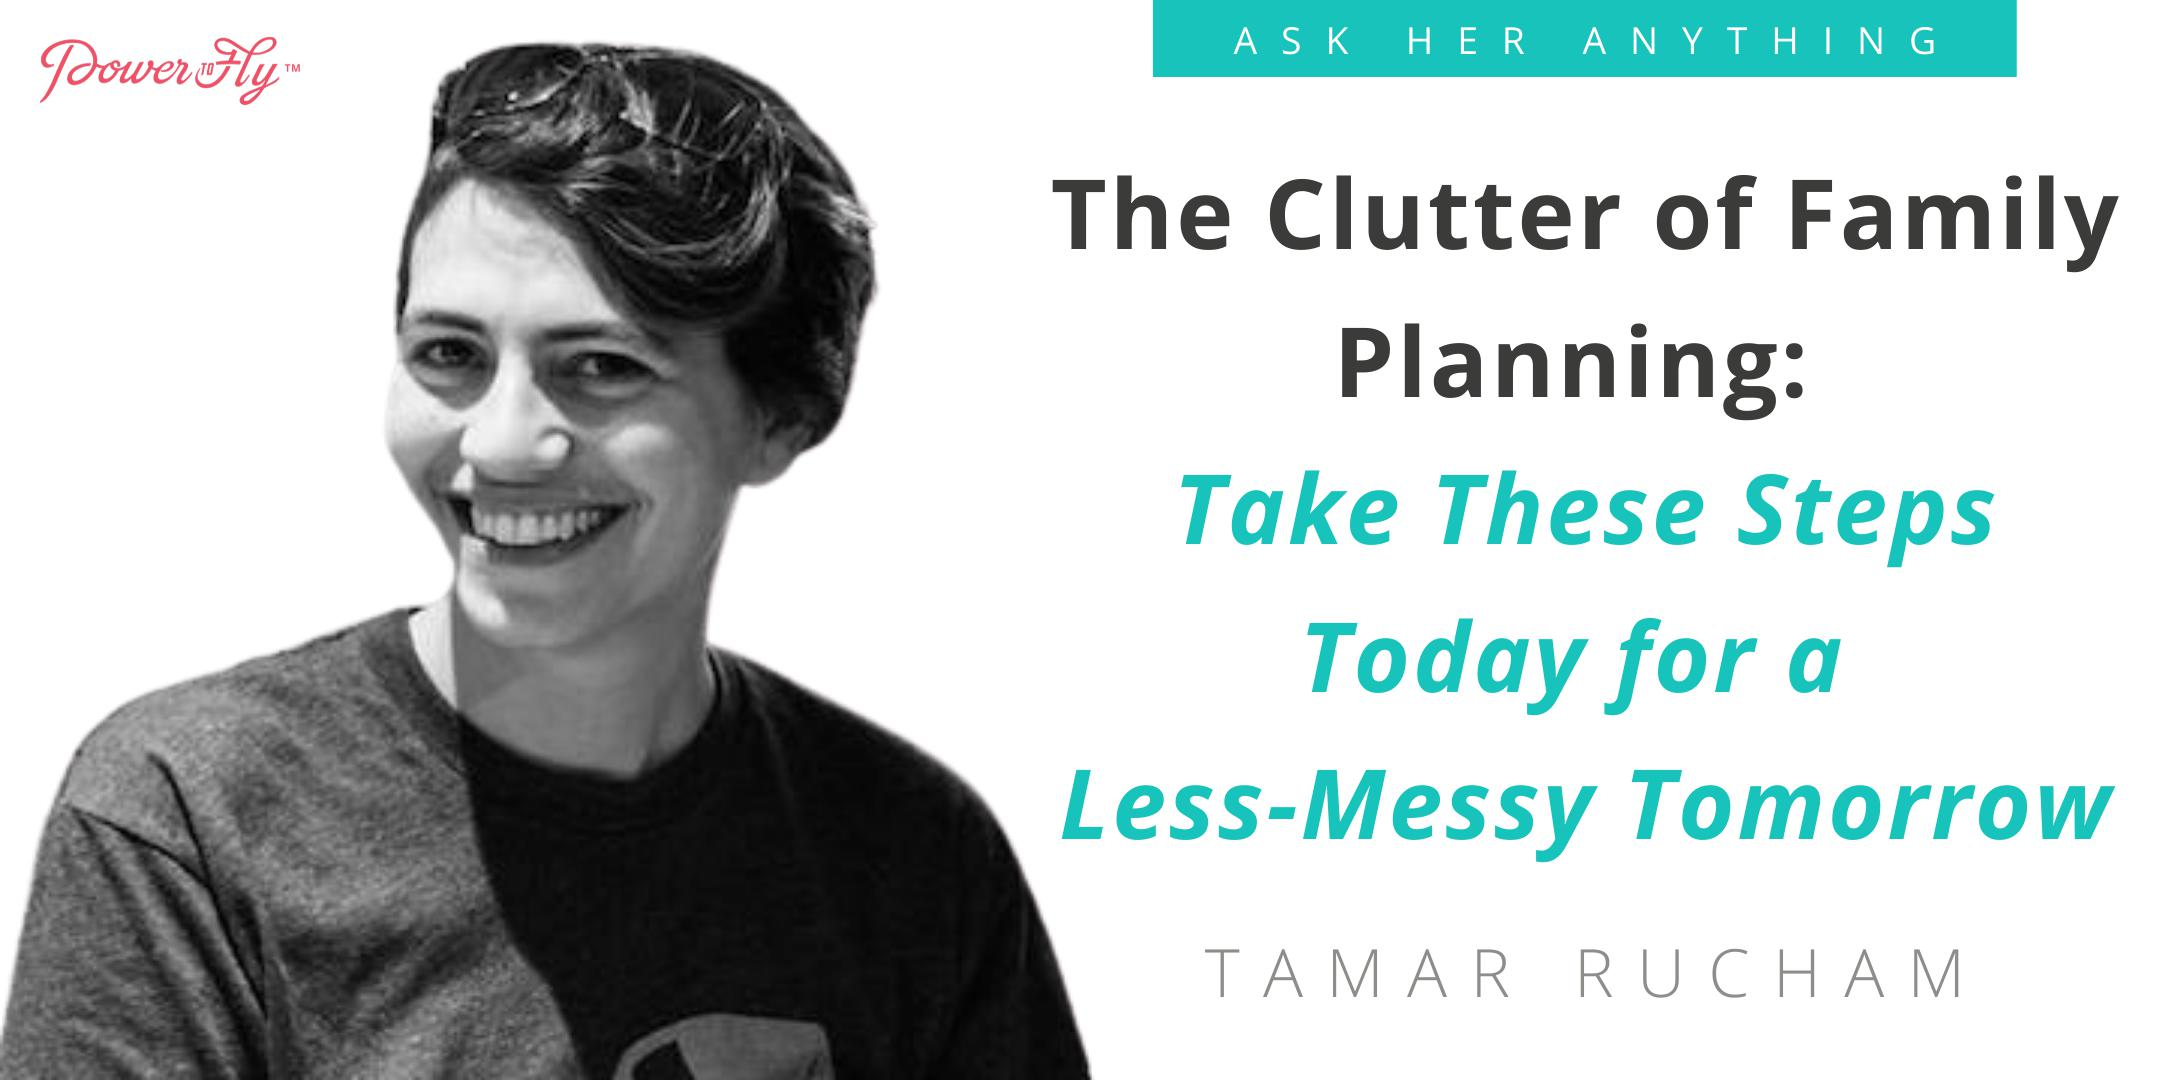 The Clutter of Family Planning: Take These Steps Today for a Less-Messy Tomorrow